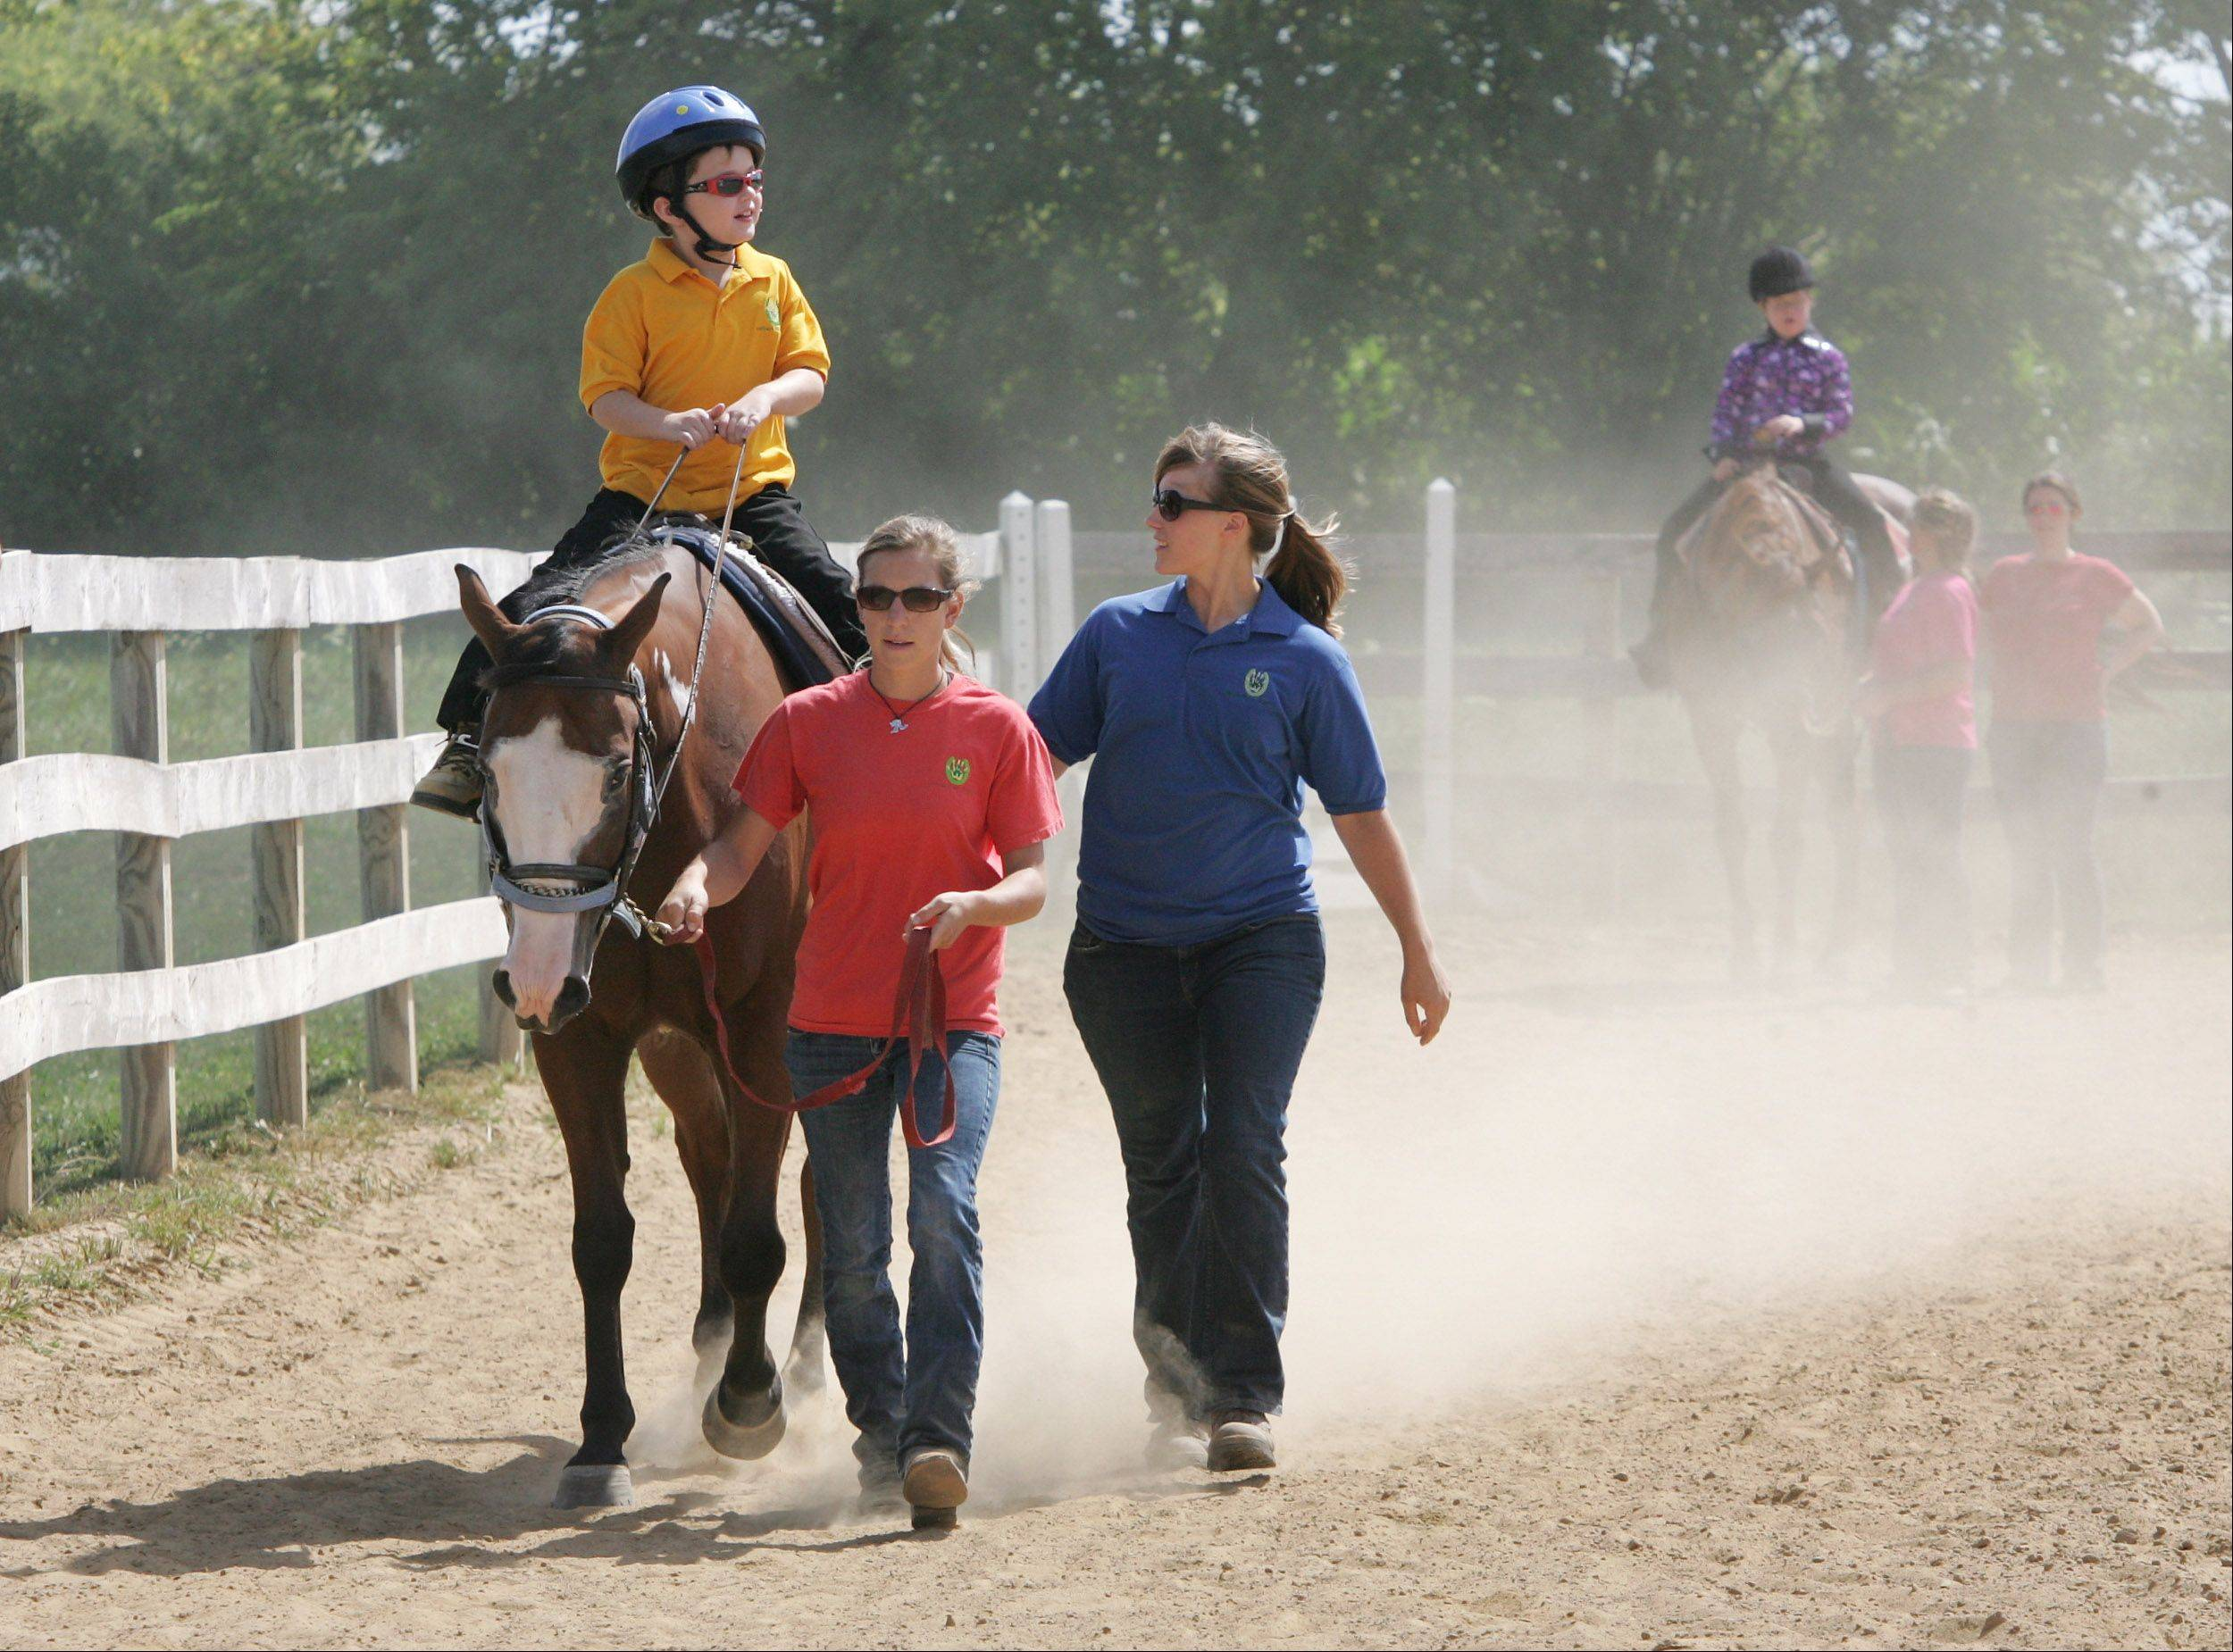 Drew McCarthy, 9, of Antioch, rides Party with help from instructors Lindsey Weick and Marle Novacnik during the Annual Family Summerfest & Participant Horse Show Event Sunday hosted by Partners For Progress at their new Premier Equine Therapy Center in Wauconda. The program's riders with special needs showcased their riding skills for family and friends.